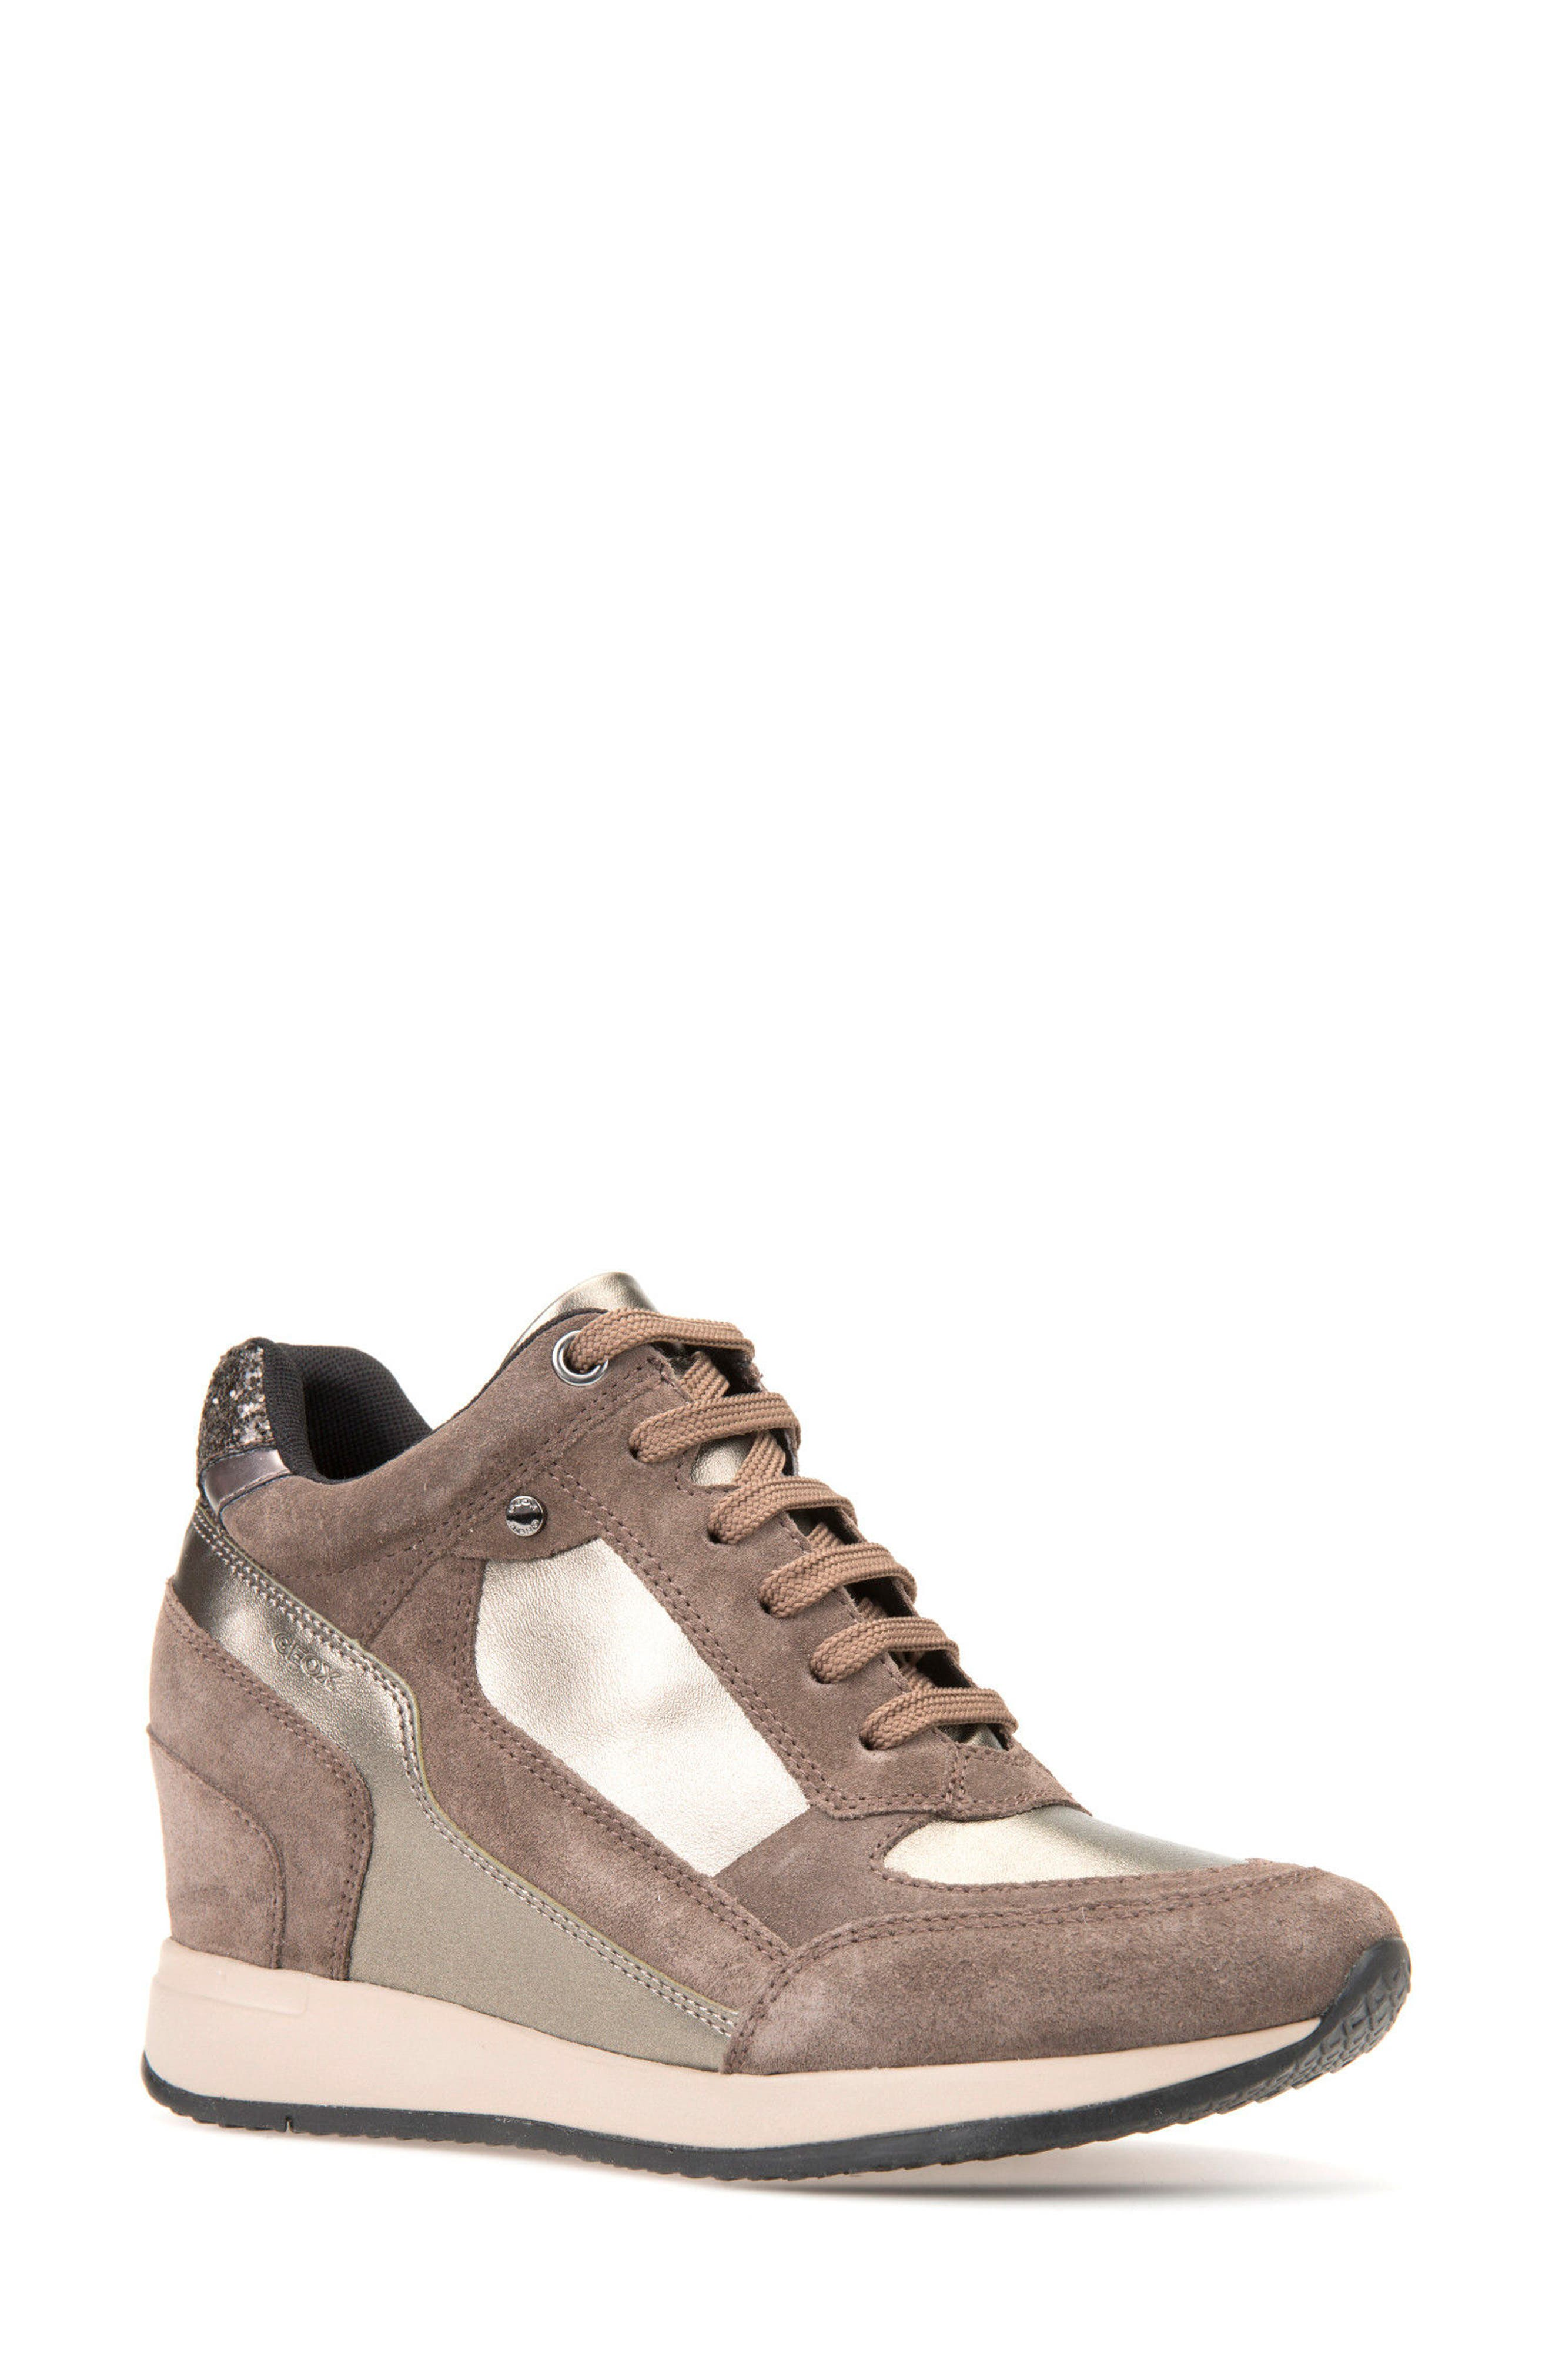 Alternate Image 1 Selected - Geox Nydame Wedge Sneaker (Women)